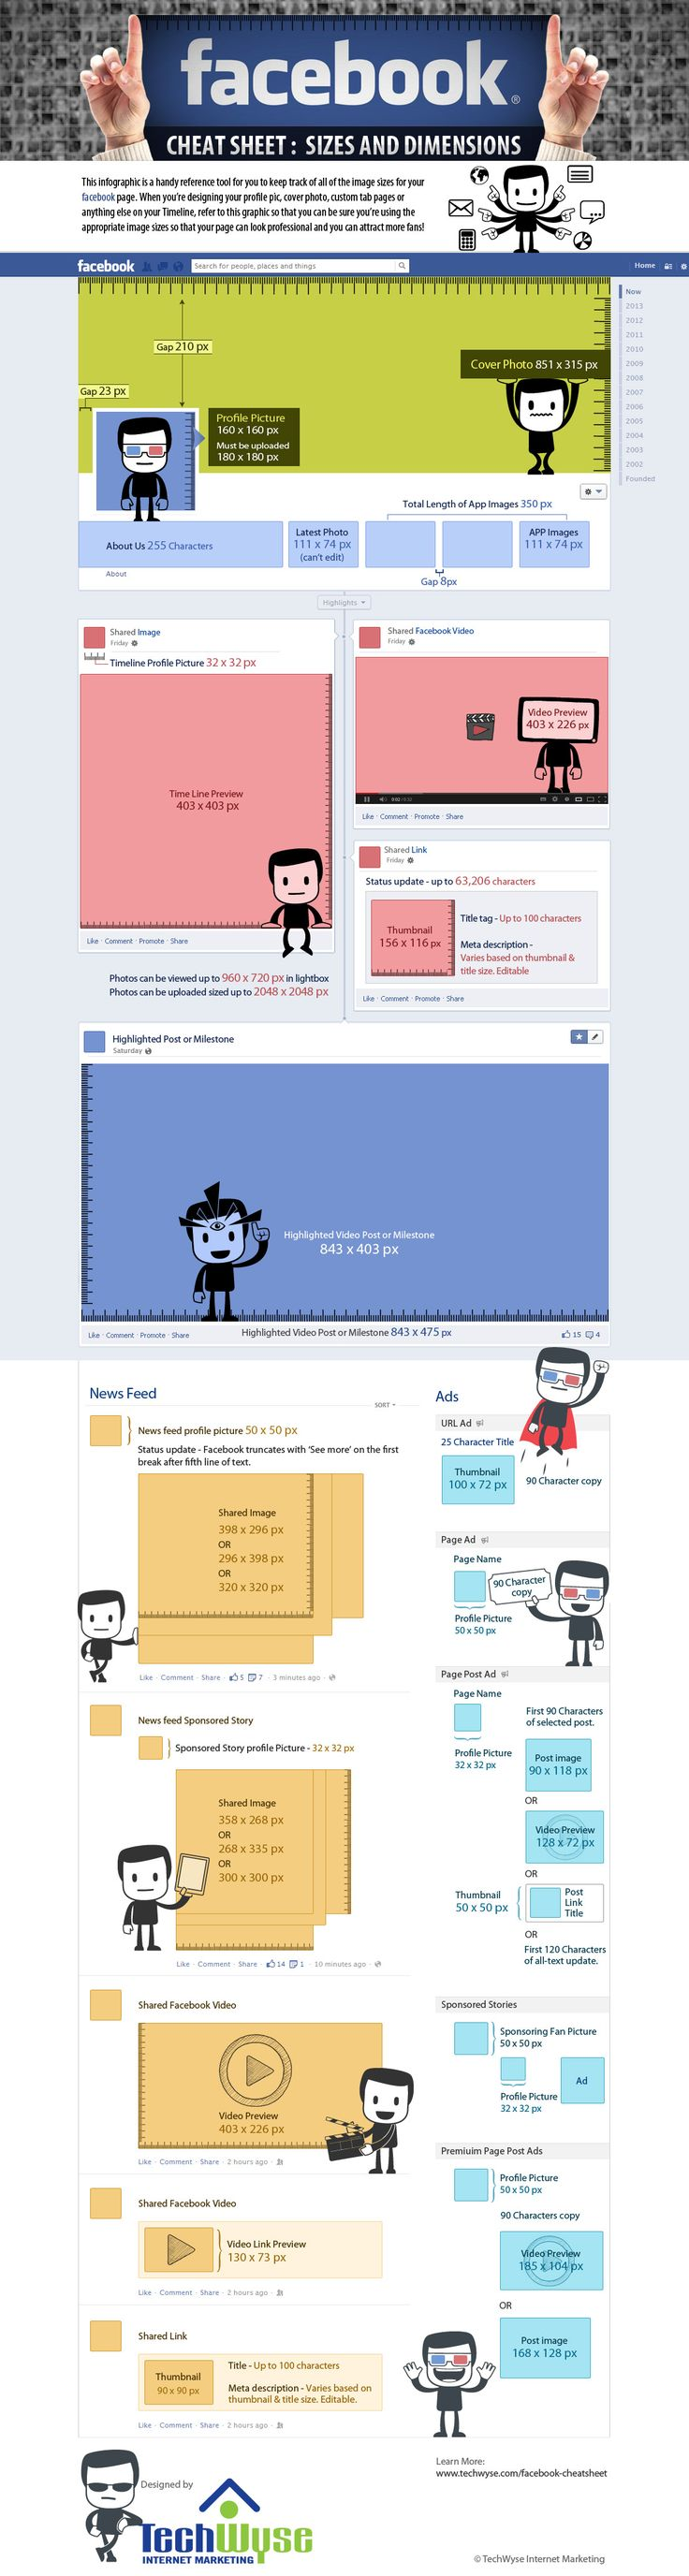 facebook-cheat-sheet-size-and-dimensions-enlarge.jpg (1101×4117) #socialmedia #facebook